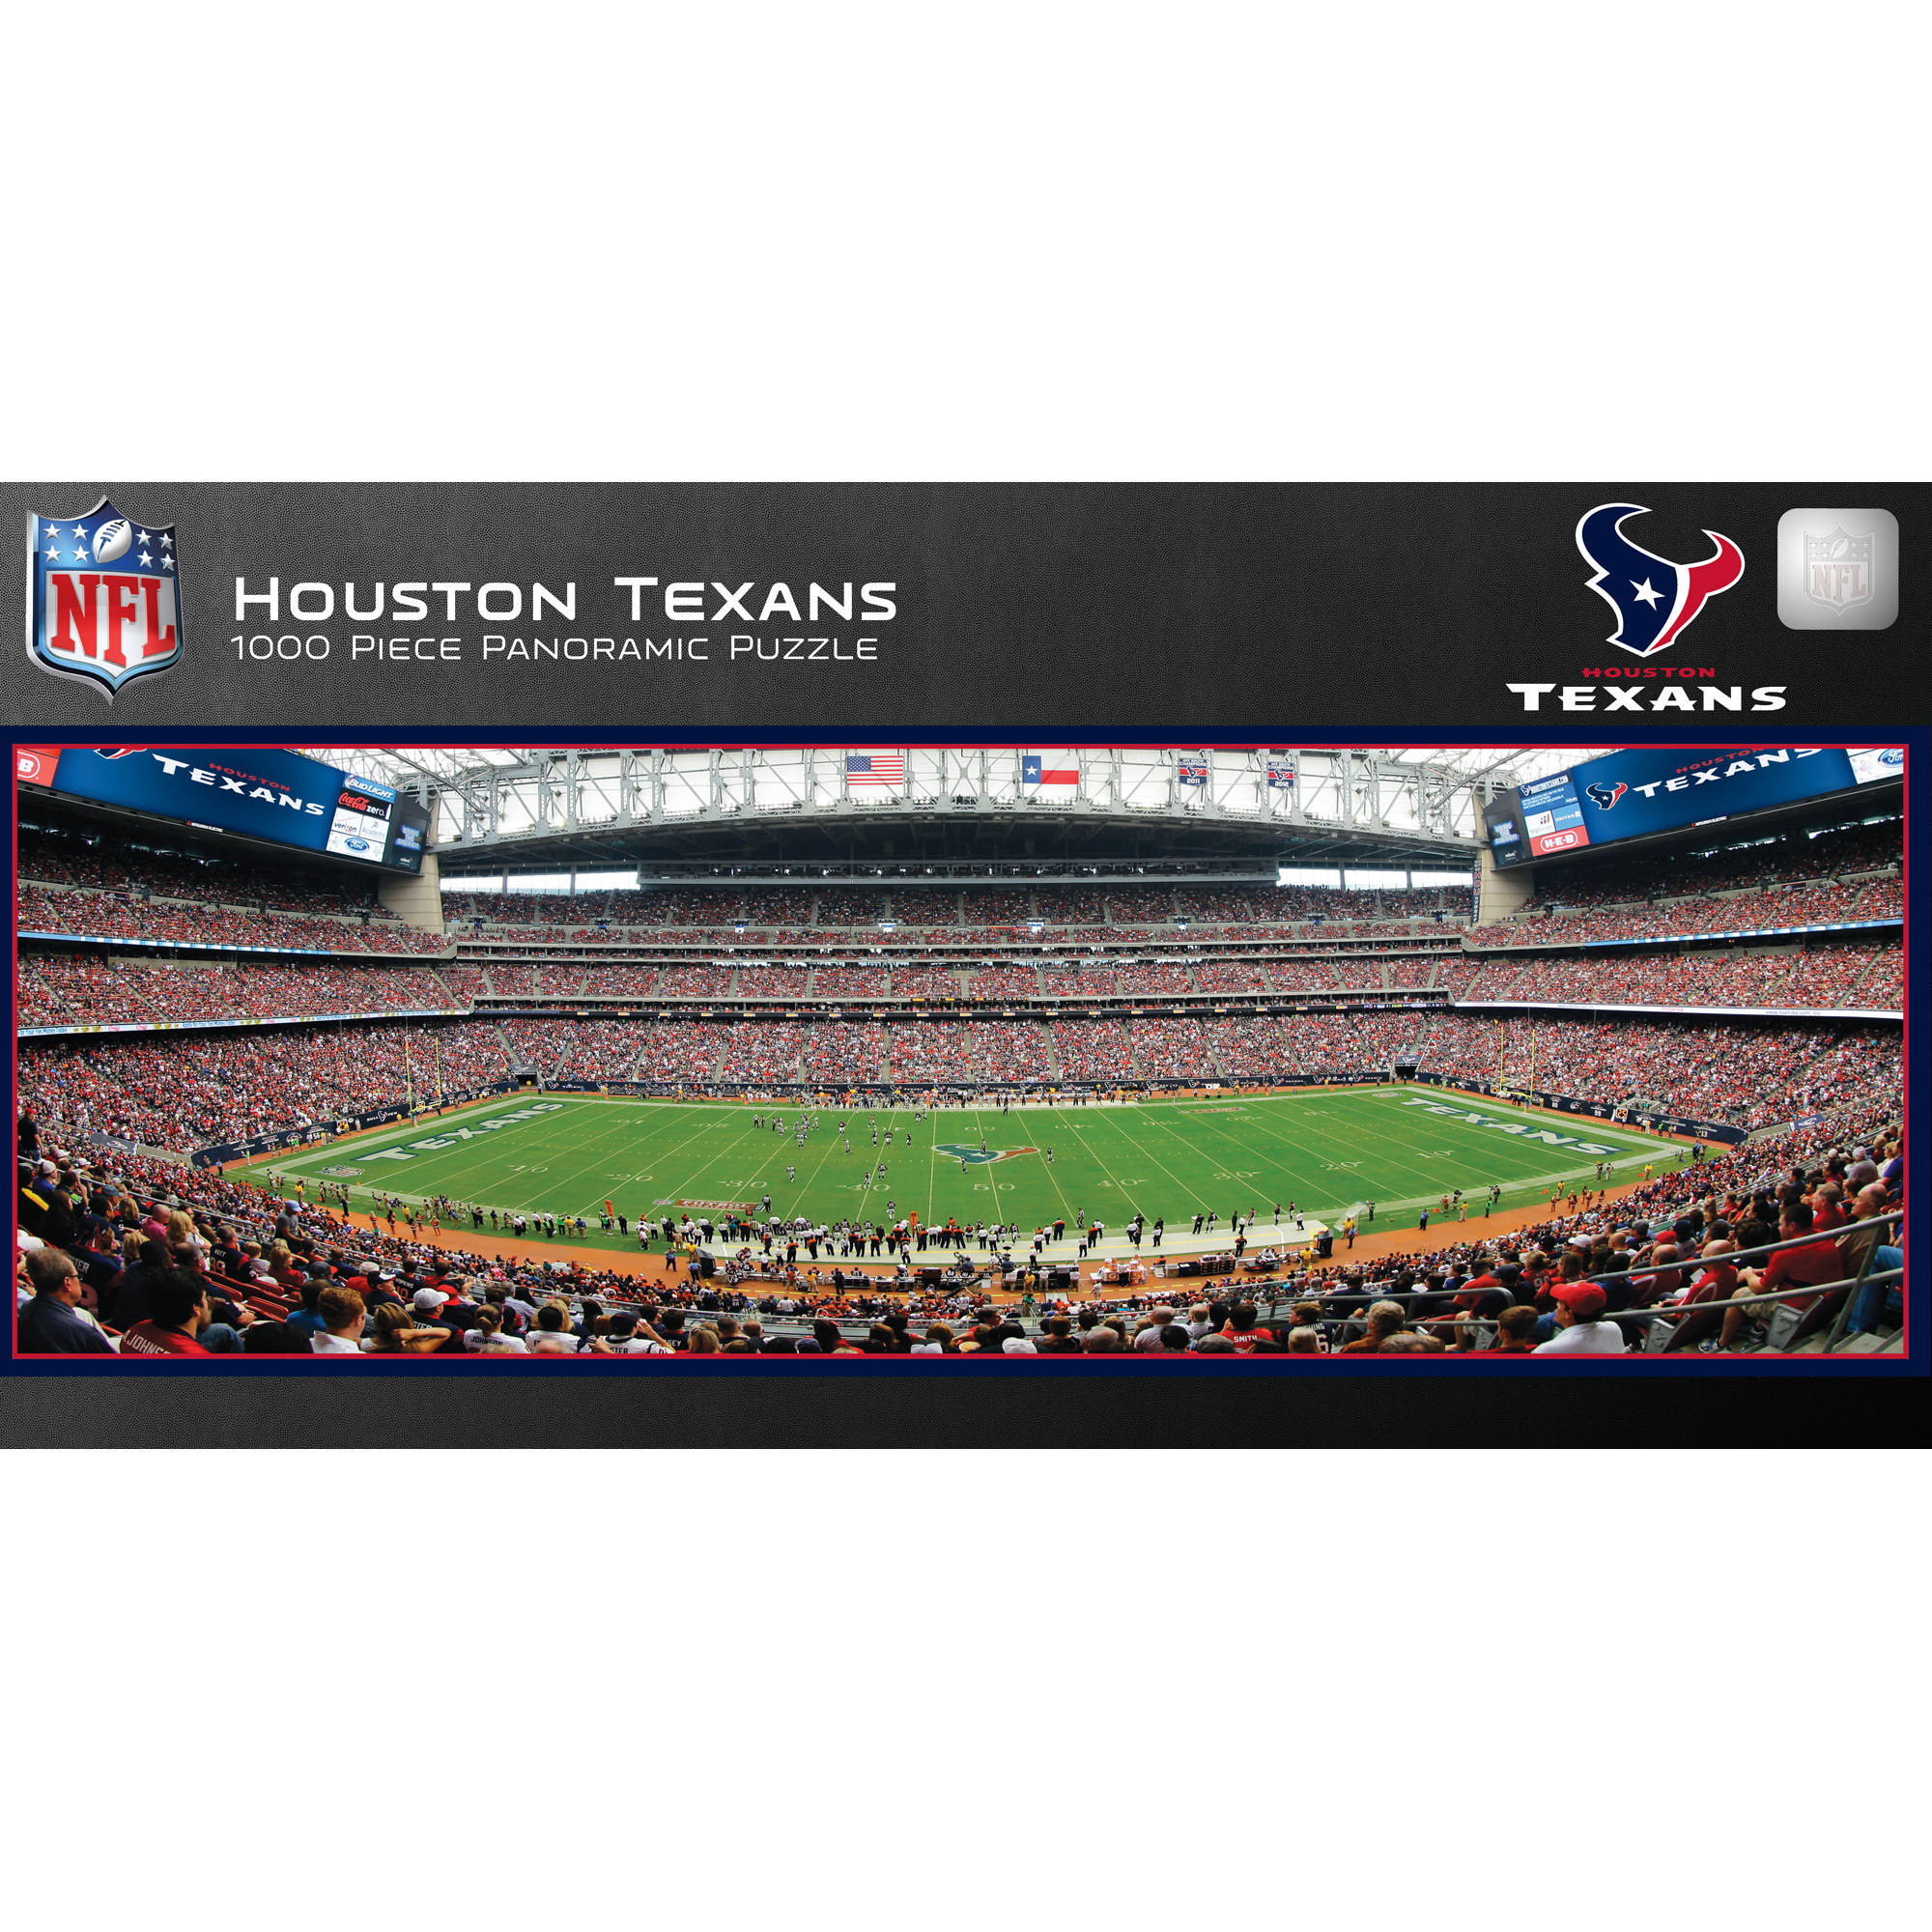 Master Pieces Houston Texans Panoramic Stadium Puzzle, 1,000 Pieces